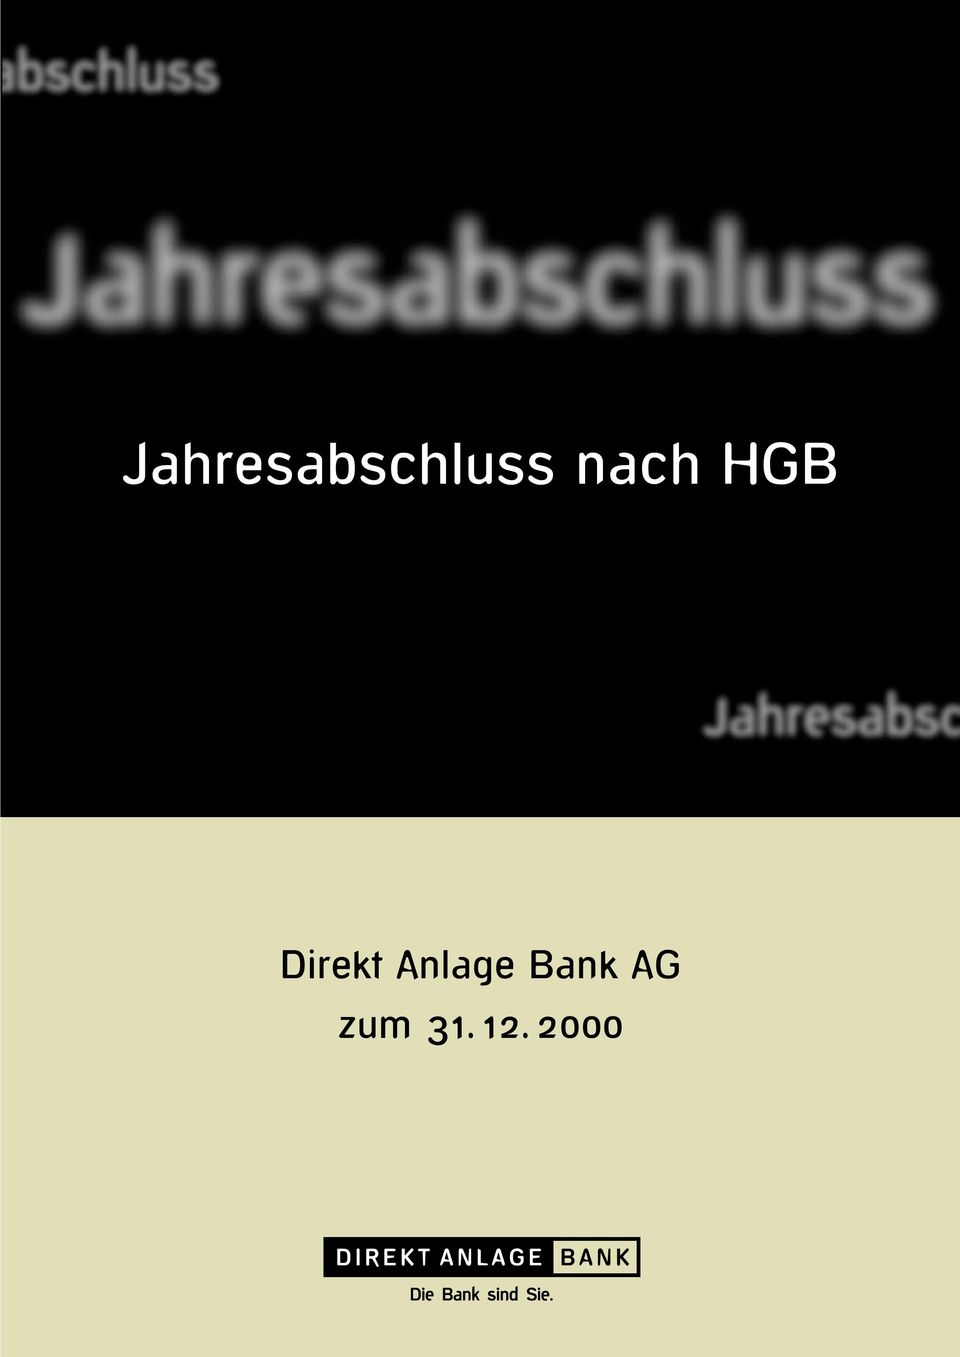 Anlage Bank AG